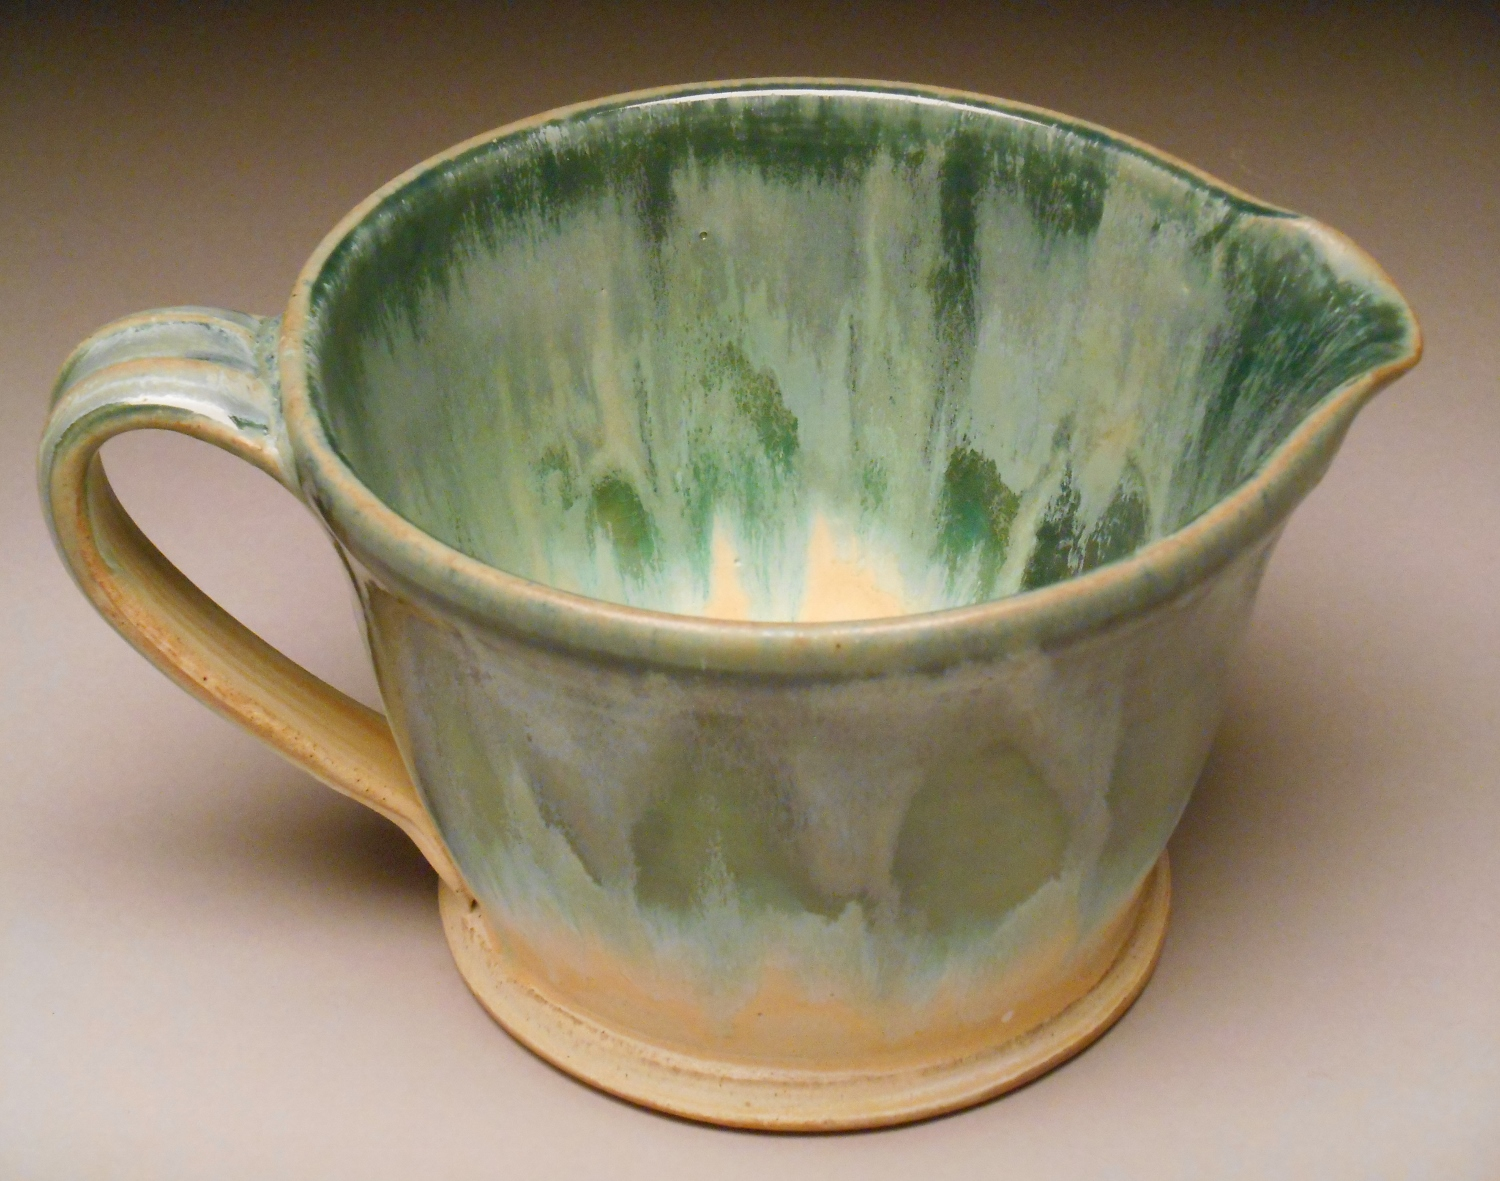 Medium Batter Bowl, $36, SOLD